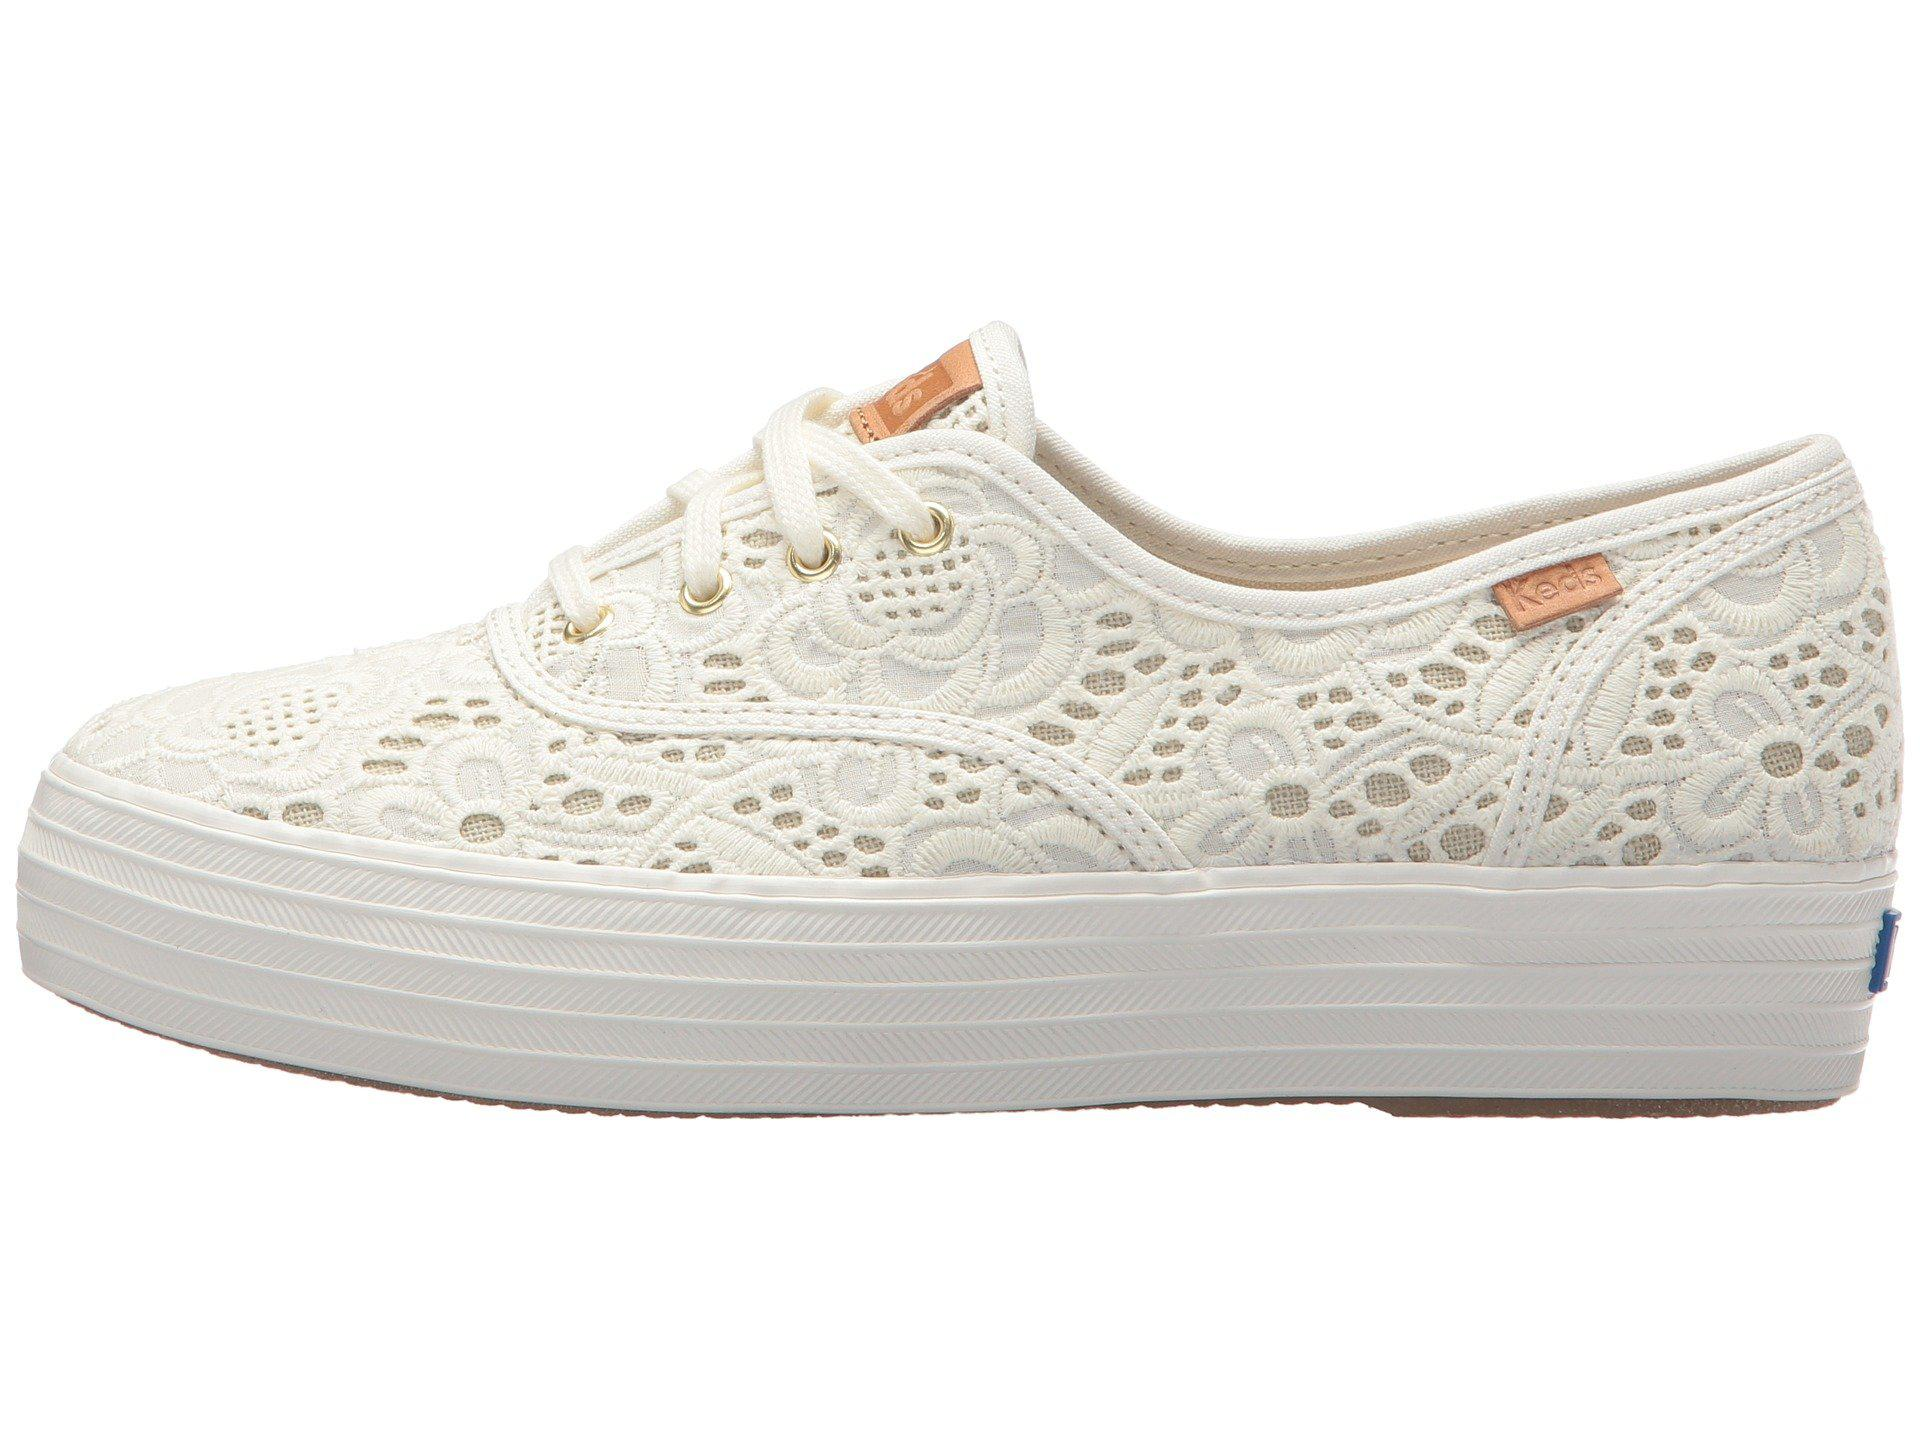 Keds Cotton Triple Embroidered Crochet